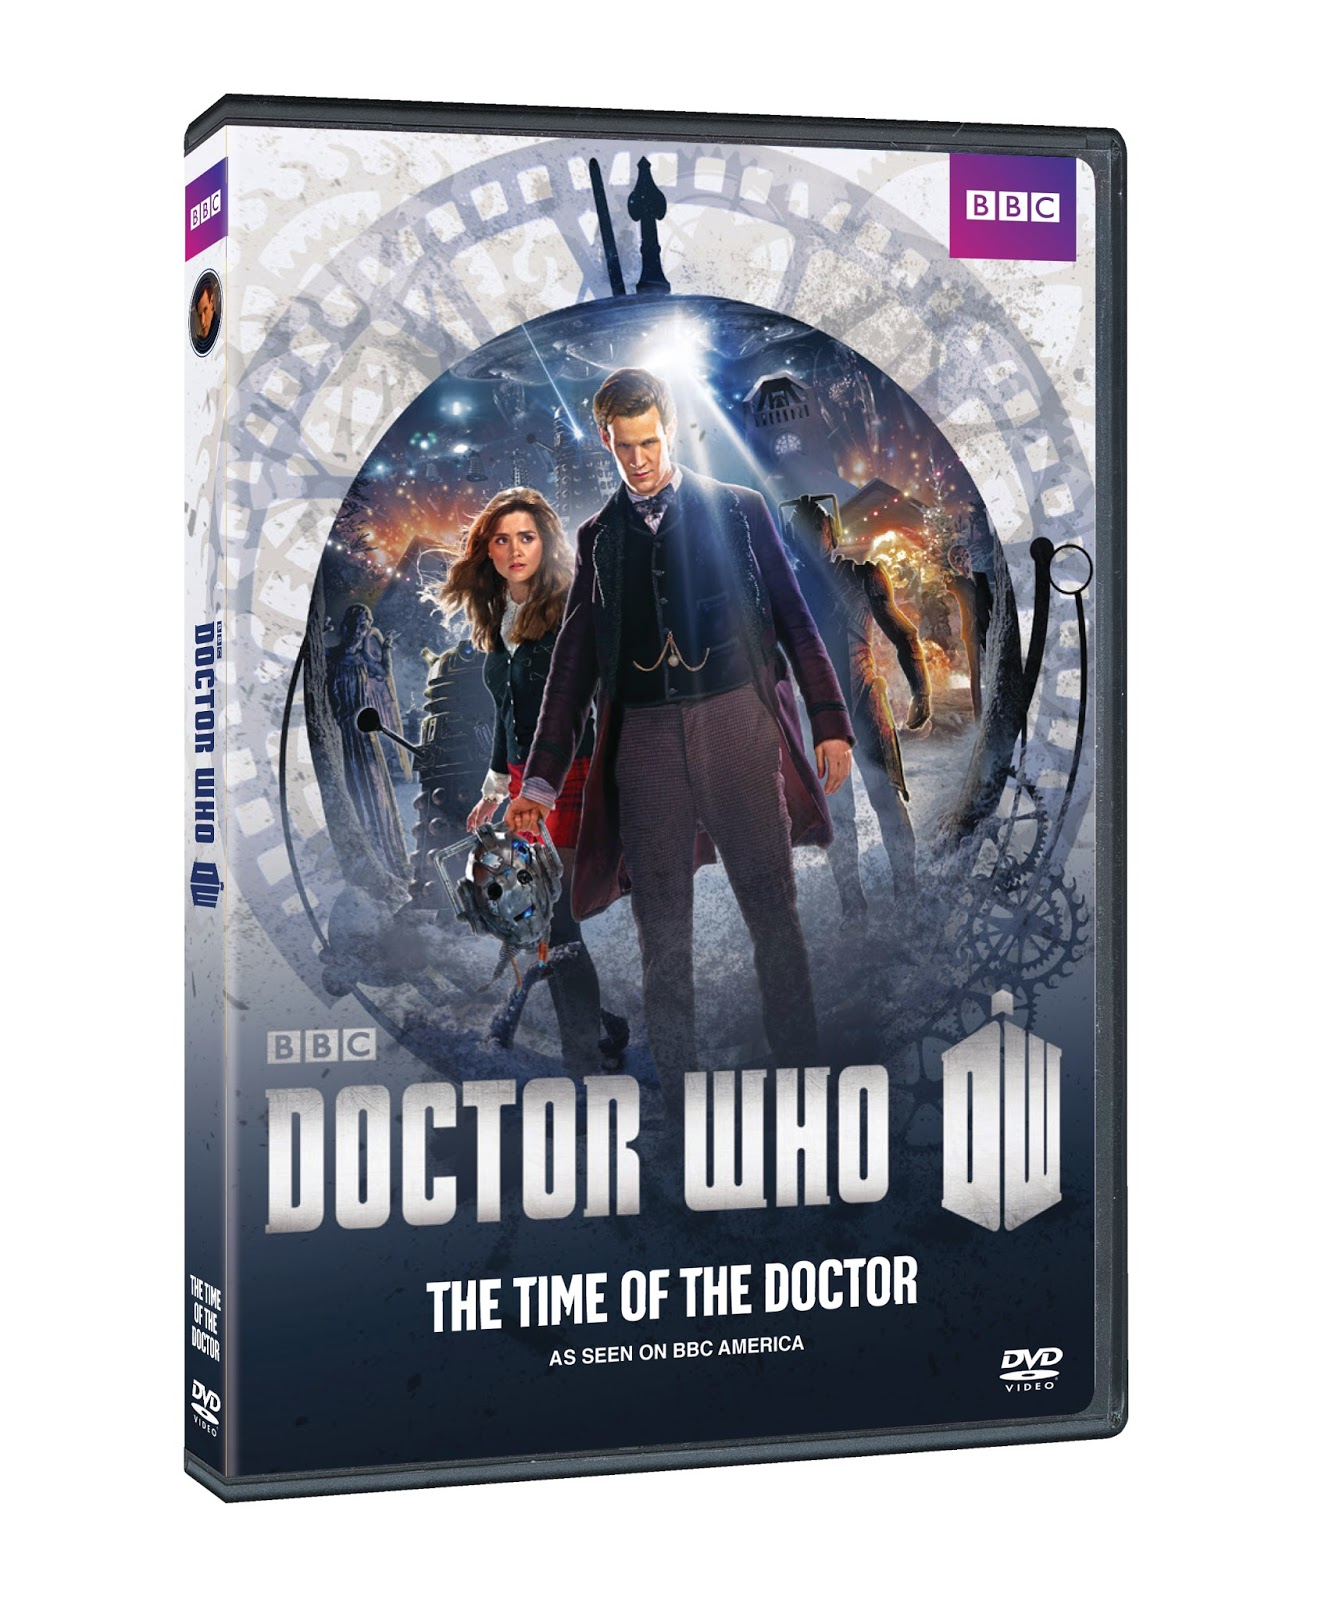 DVD Review - Doctor Who: The Time of the Doctor